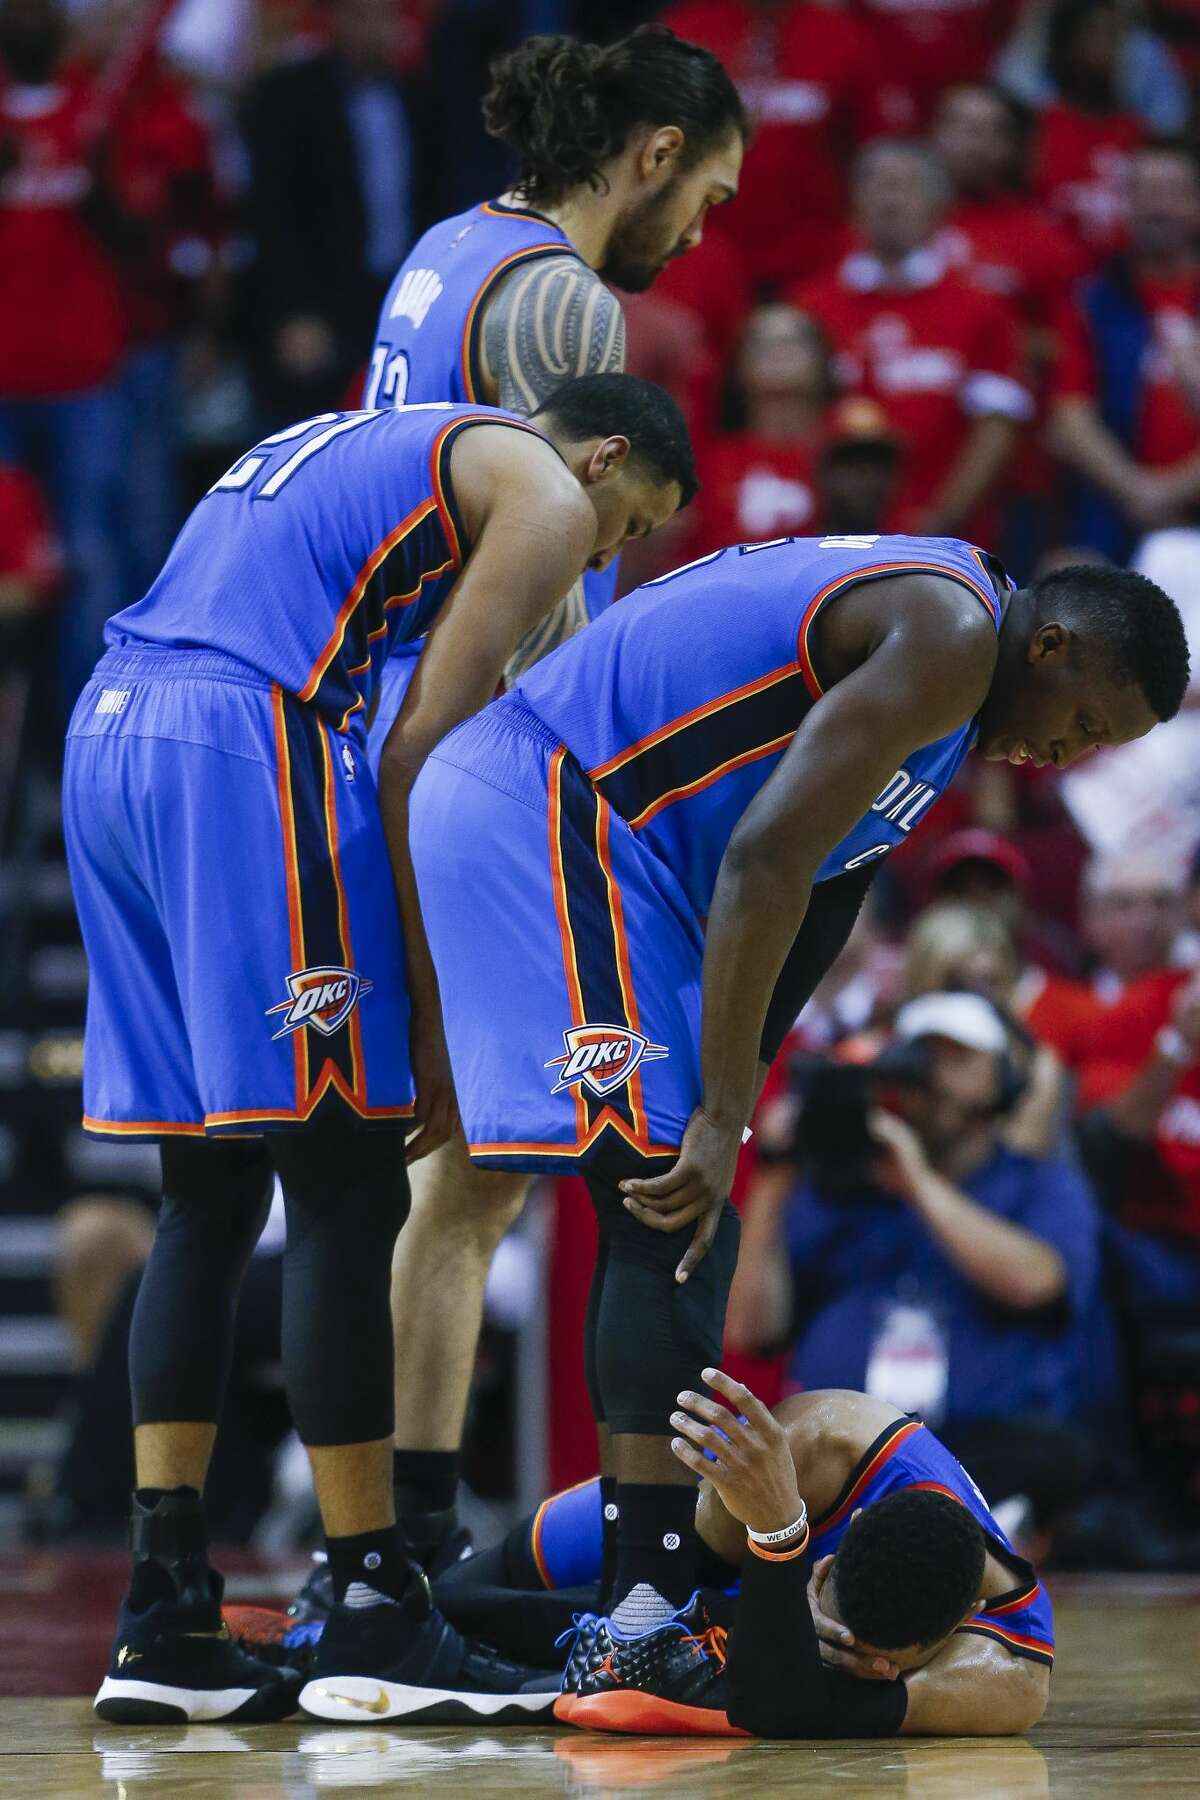 Oklahoma City Thunder teammates surround Oklahoma City Thunder guard Russell Westbrook (0) as he lays on the court after a foul as the Houston Rockets beat the Oklahoma City Thunder 115-111 in Game 2 of the first-round playoff series Wednesday, April 19, 2017 in Houston at the Toyota Center. ( Michael Ciaglo / Houston Chronicle)